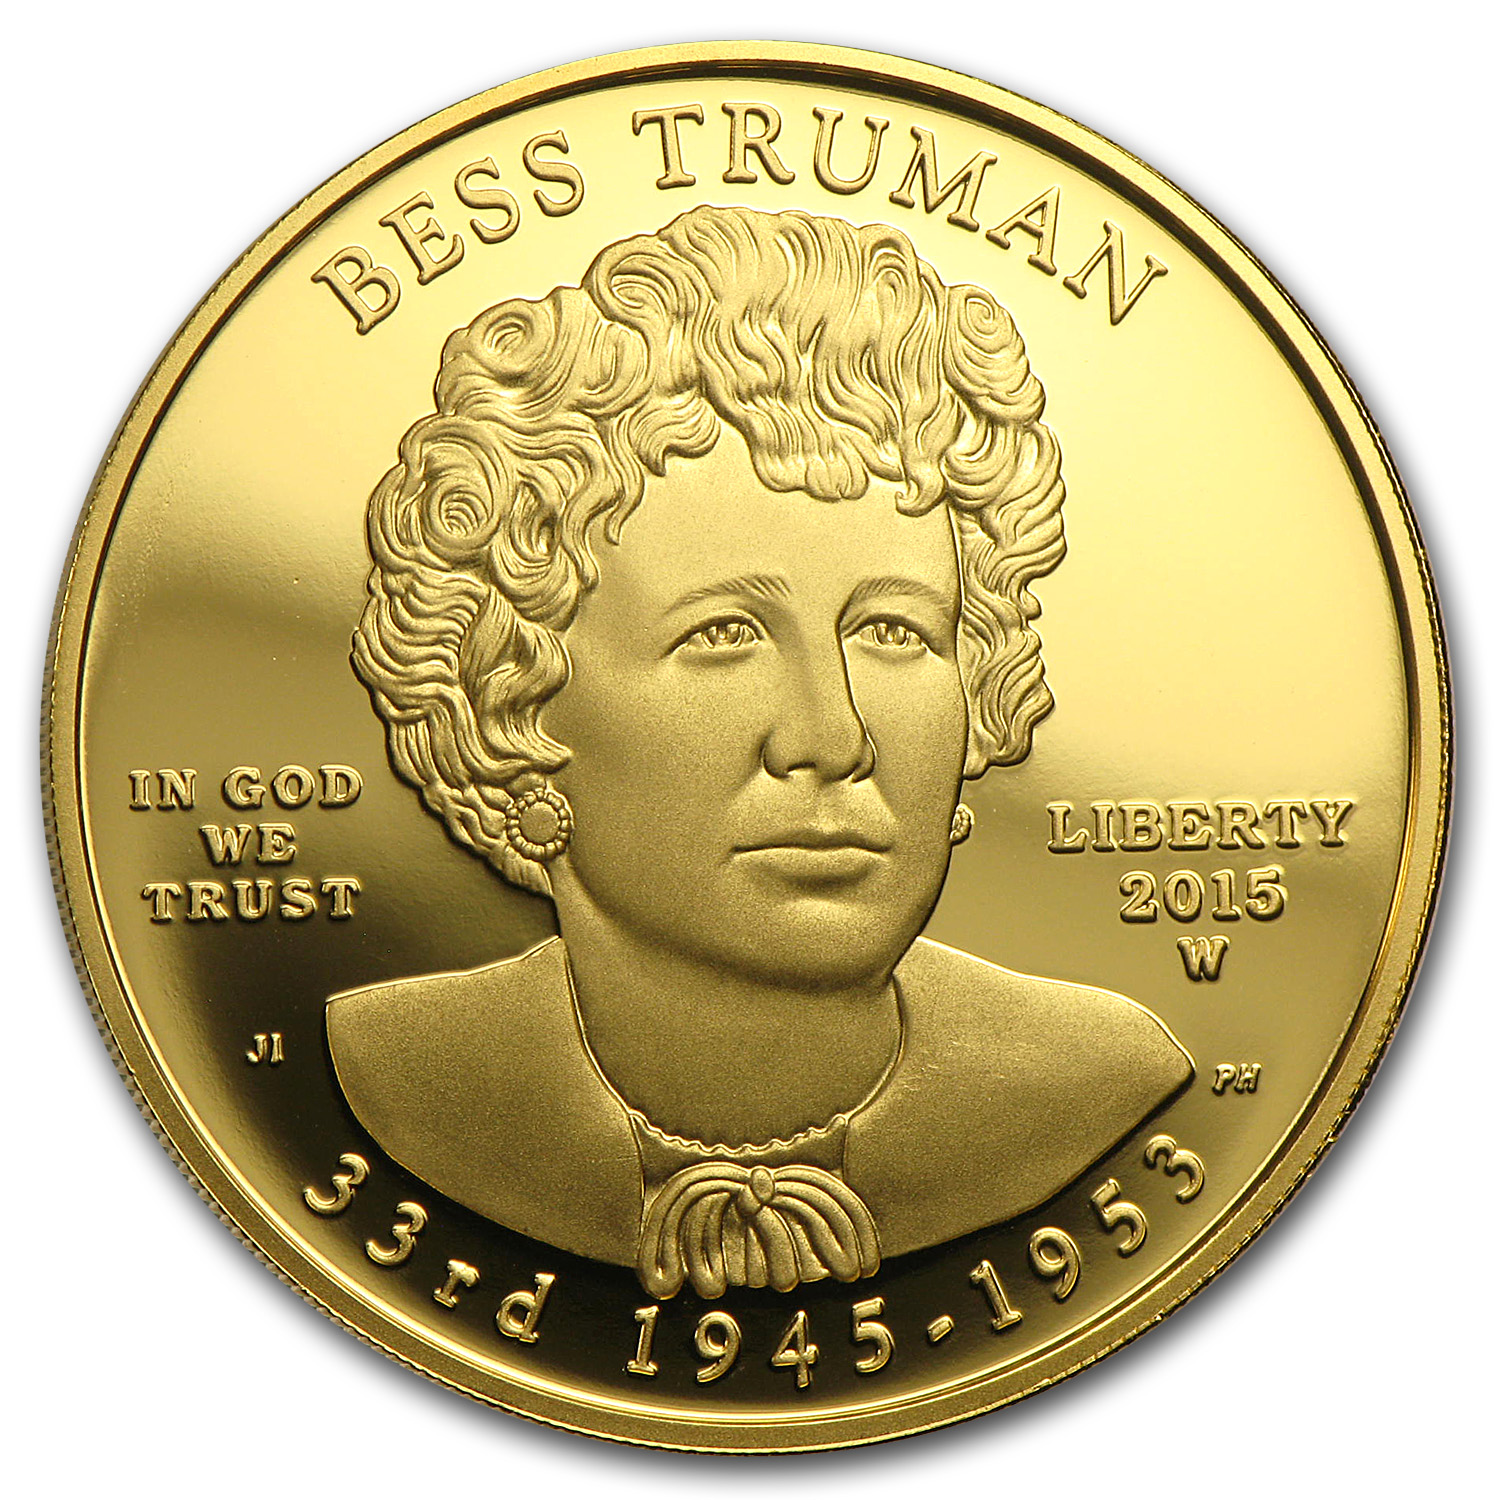 2015-W 1/2 oz Proof Gold Bess Truman (w/Box & COA)